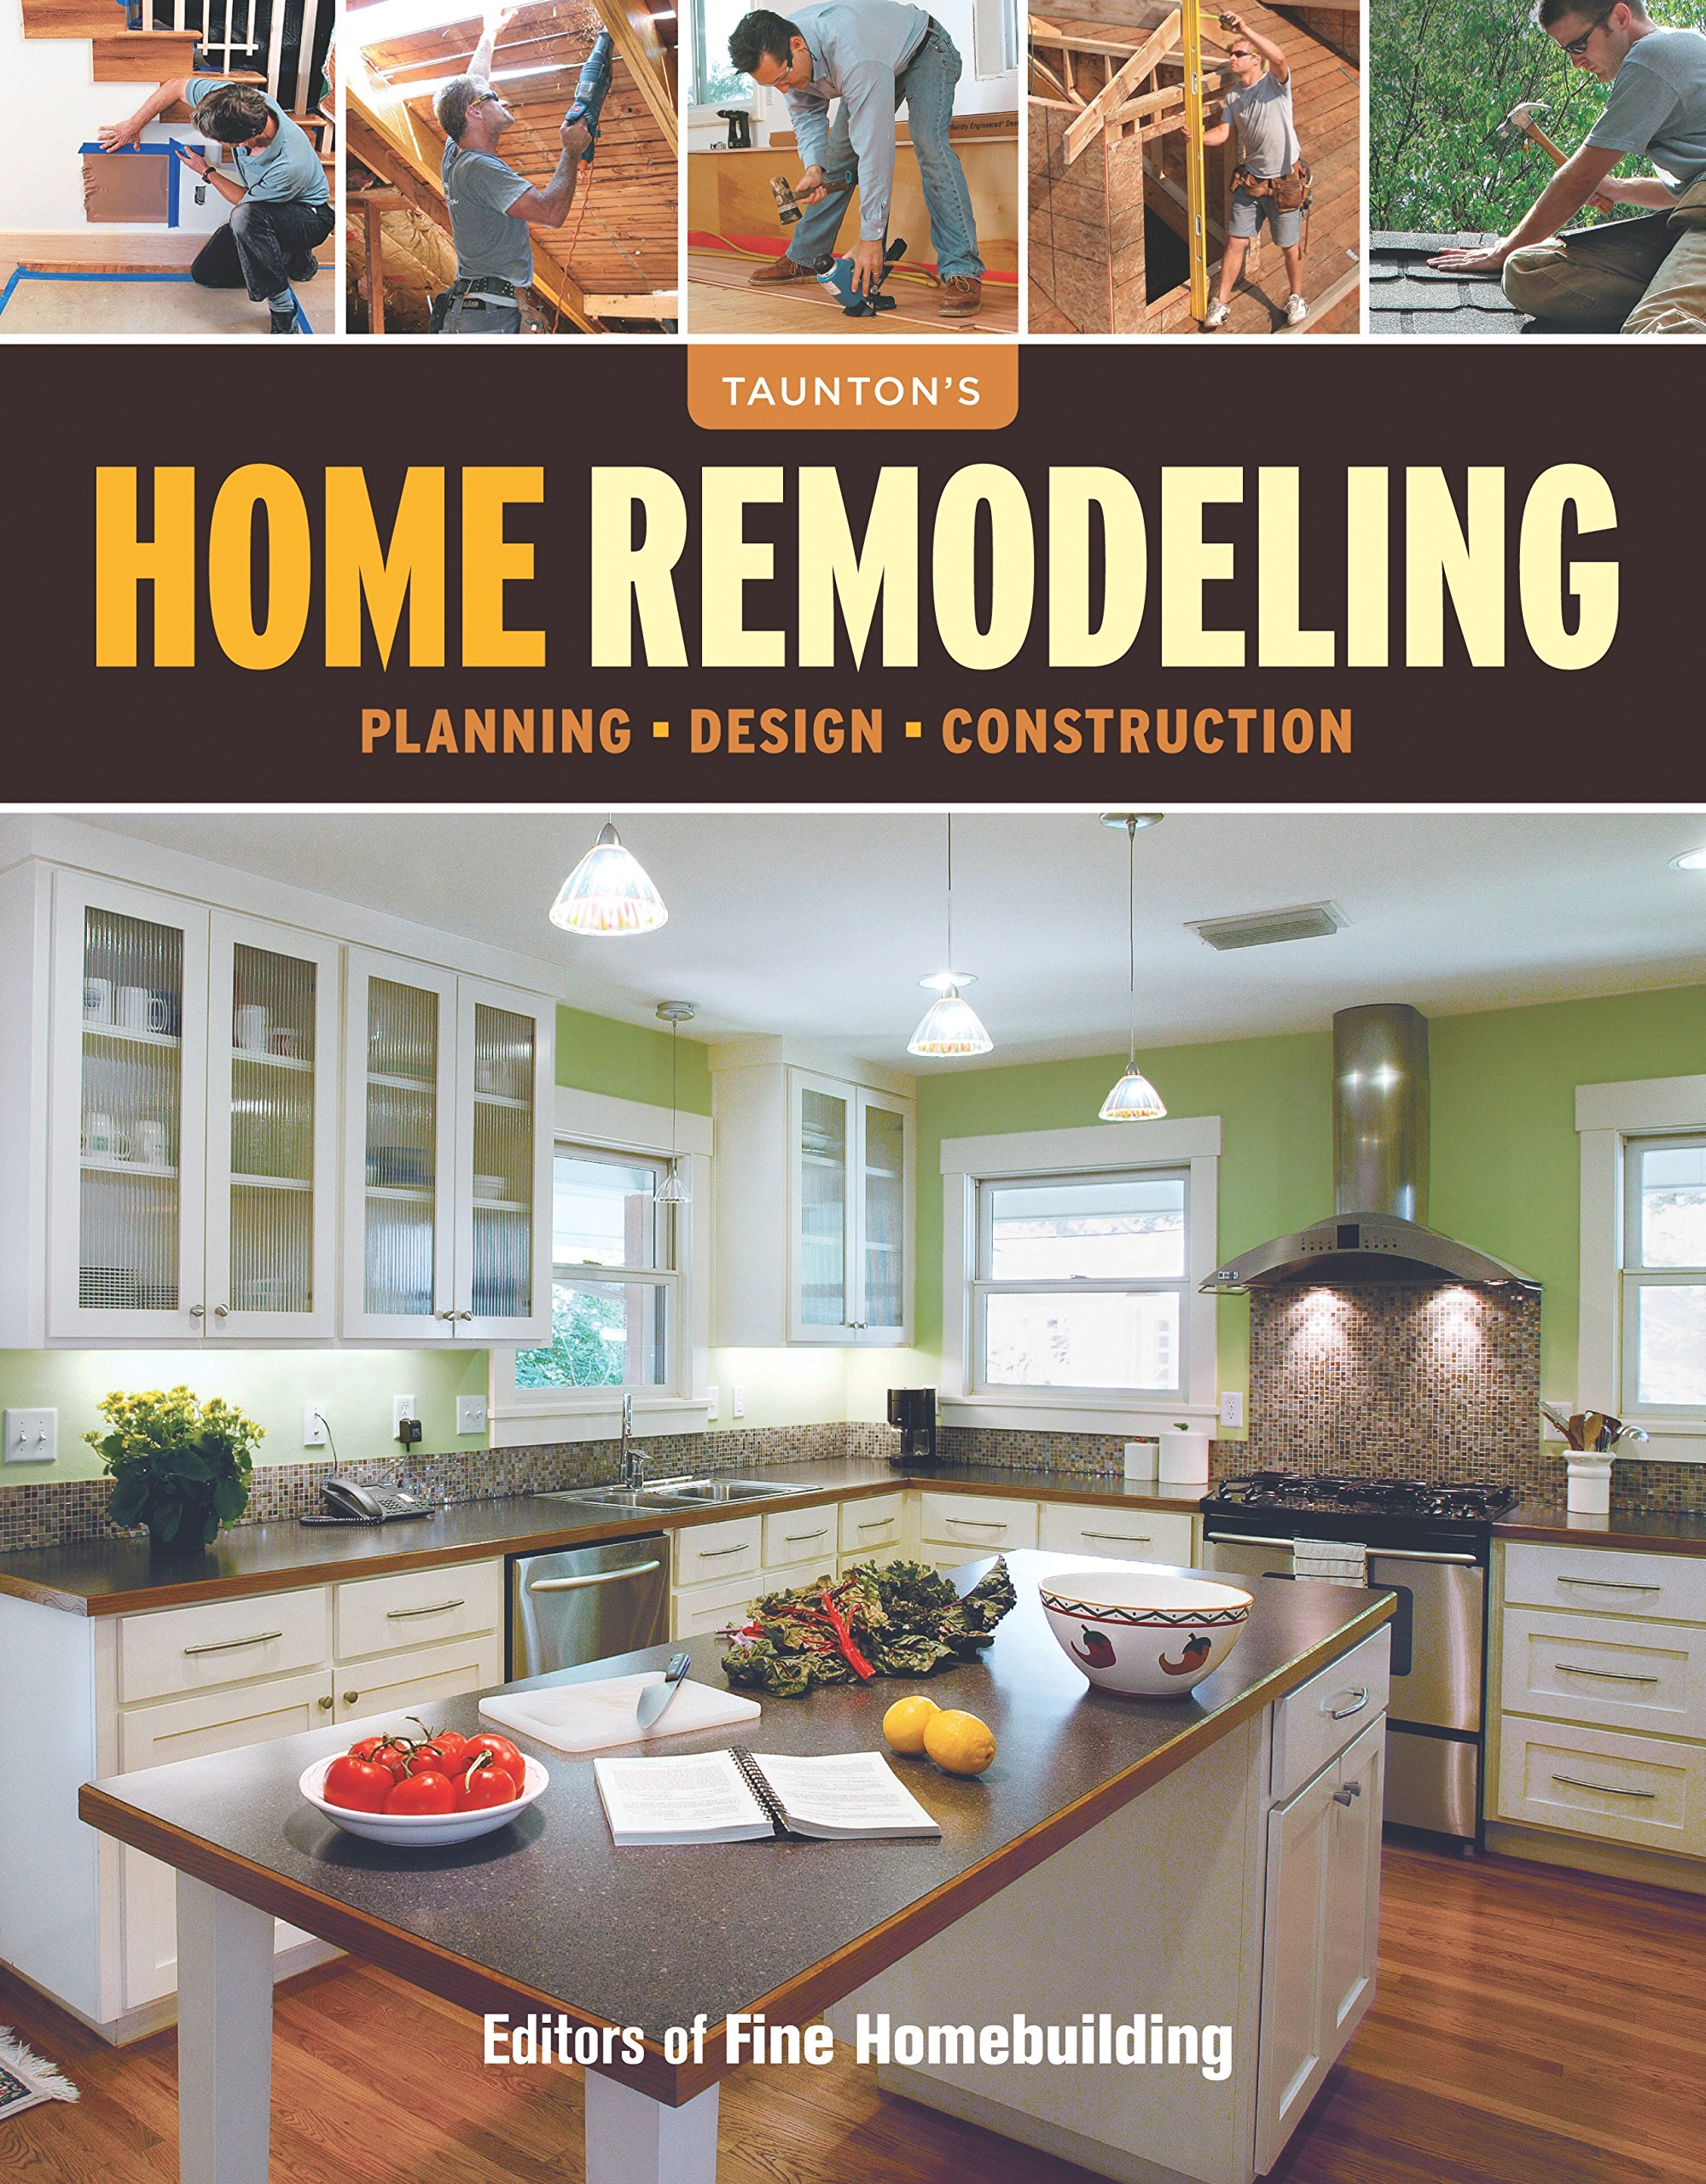 Home Remodeling: Planning*Design*Construction: Editors of Fine ...